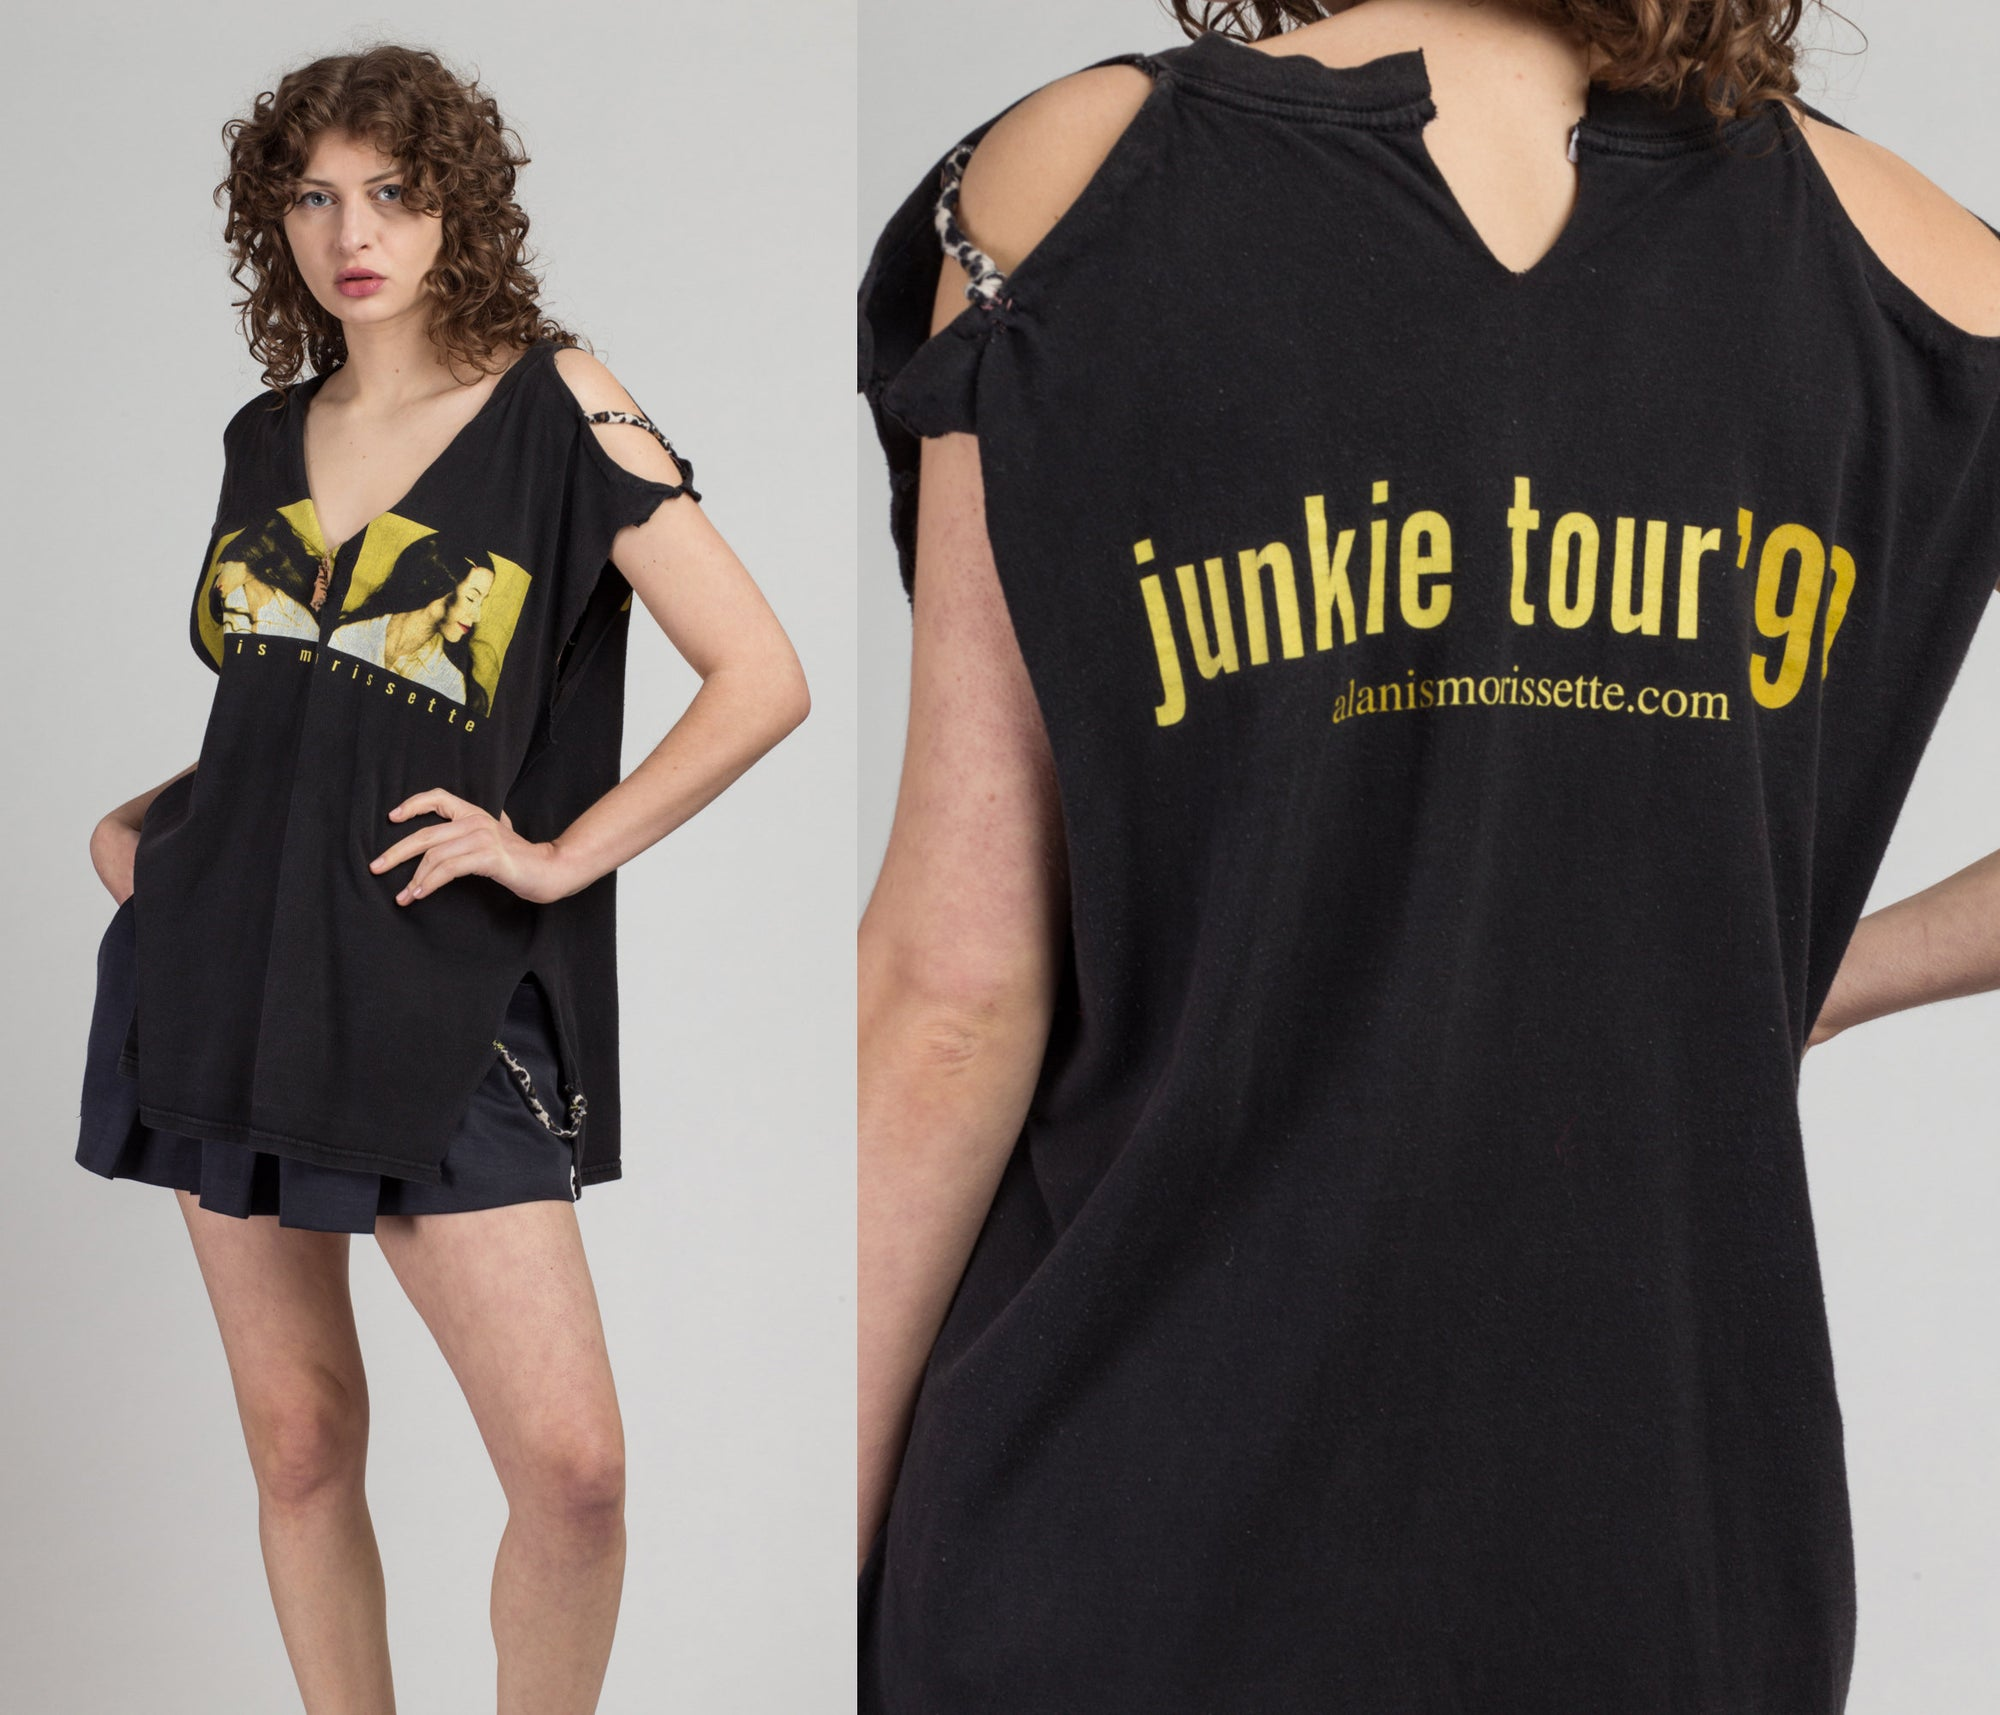 1999 Alanis Morissette Junkie Tour Muscle Tee - XXL | Vintage 90s Black Grunge Graphic Band Tank